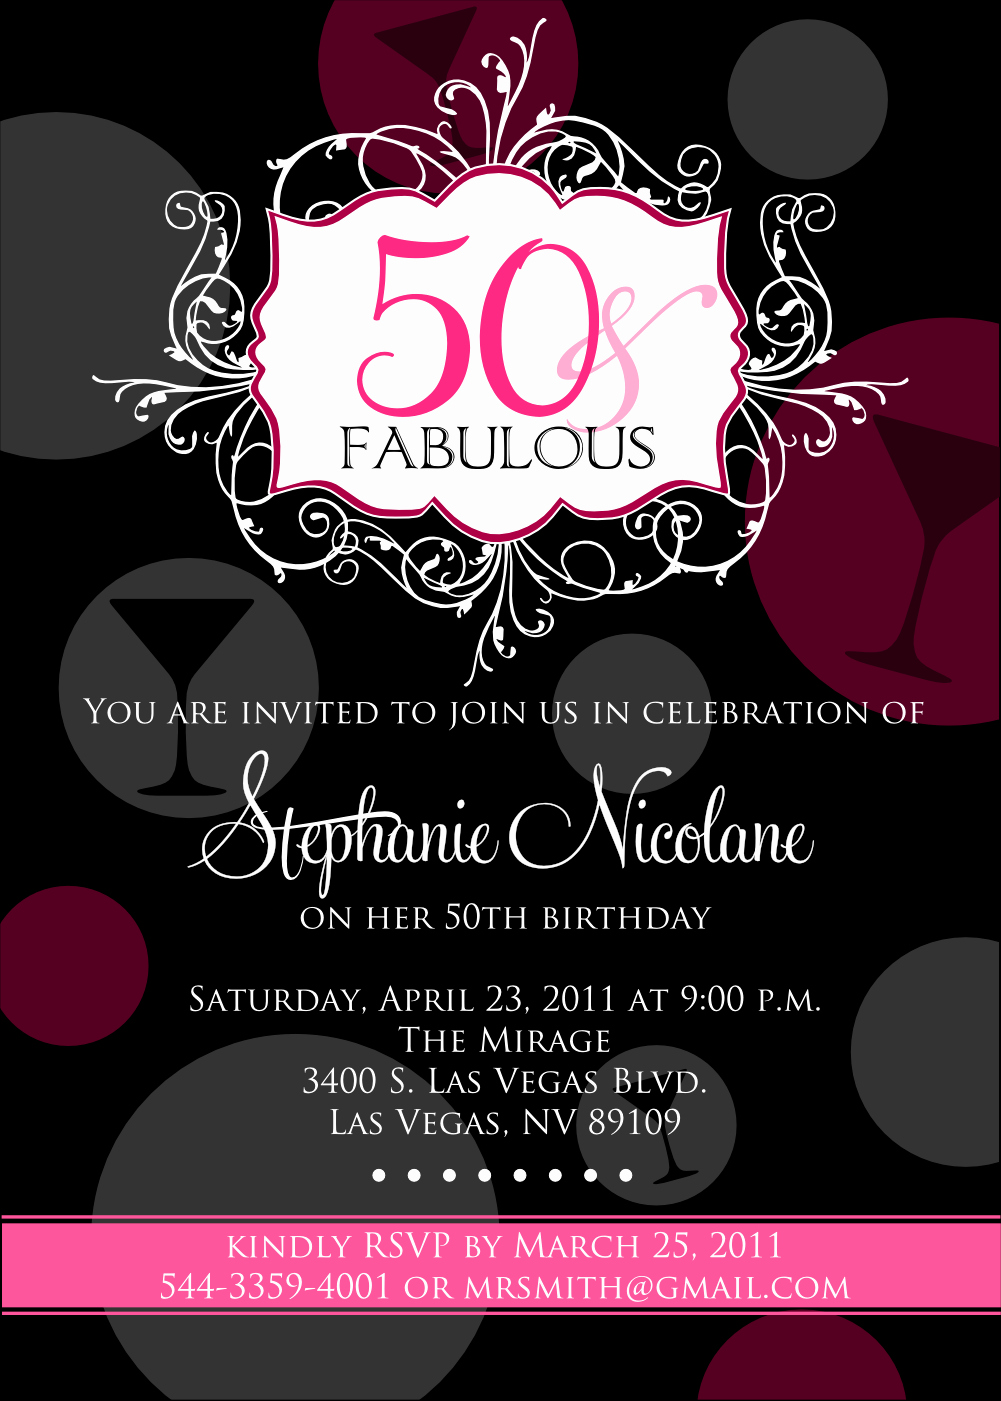 50th Birthday Invitation Card Best Of 50th Birthday Beach Party Invitations